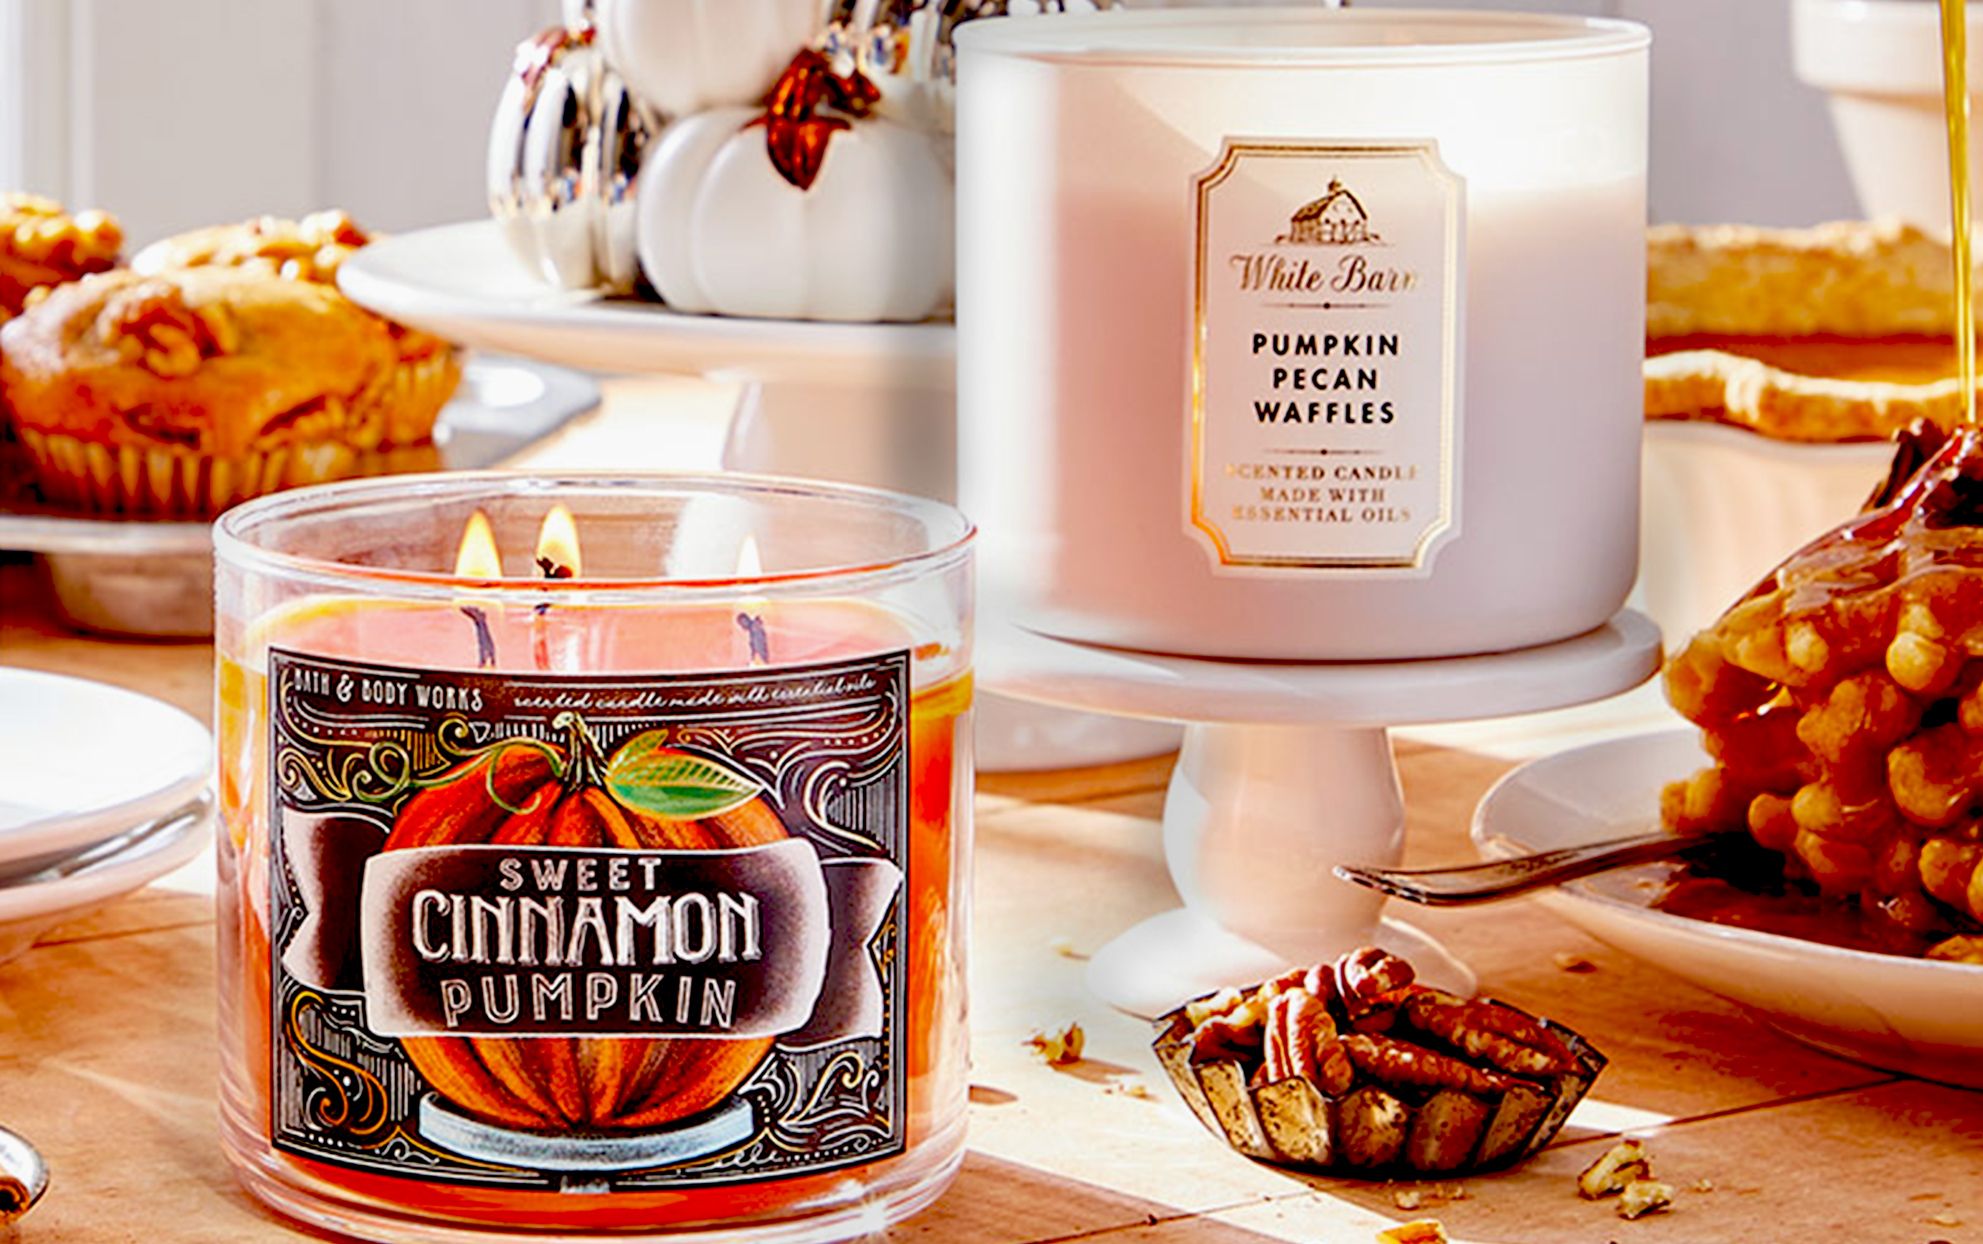 Two Bath & Bodyworks Fall candles on a wooden table with desserts